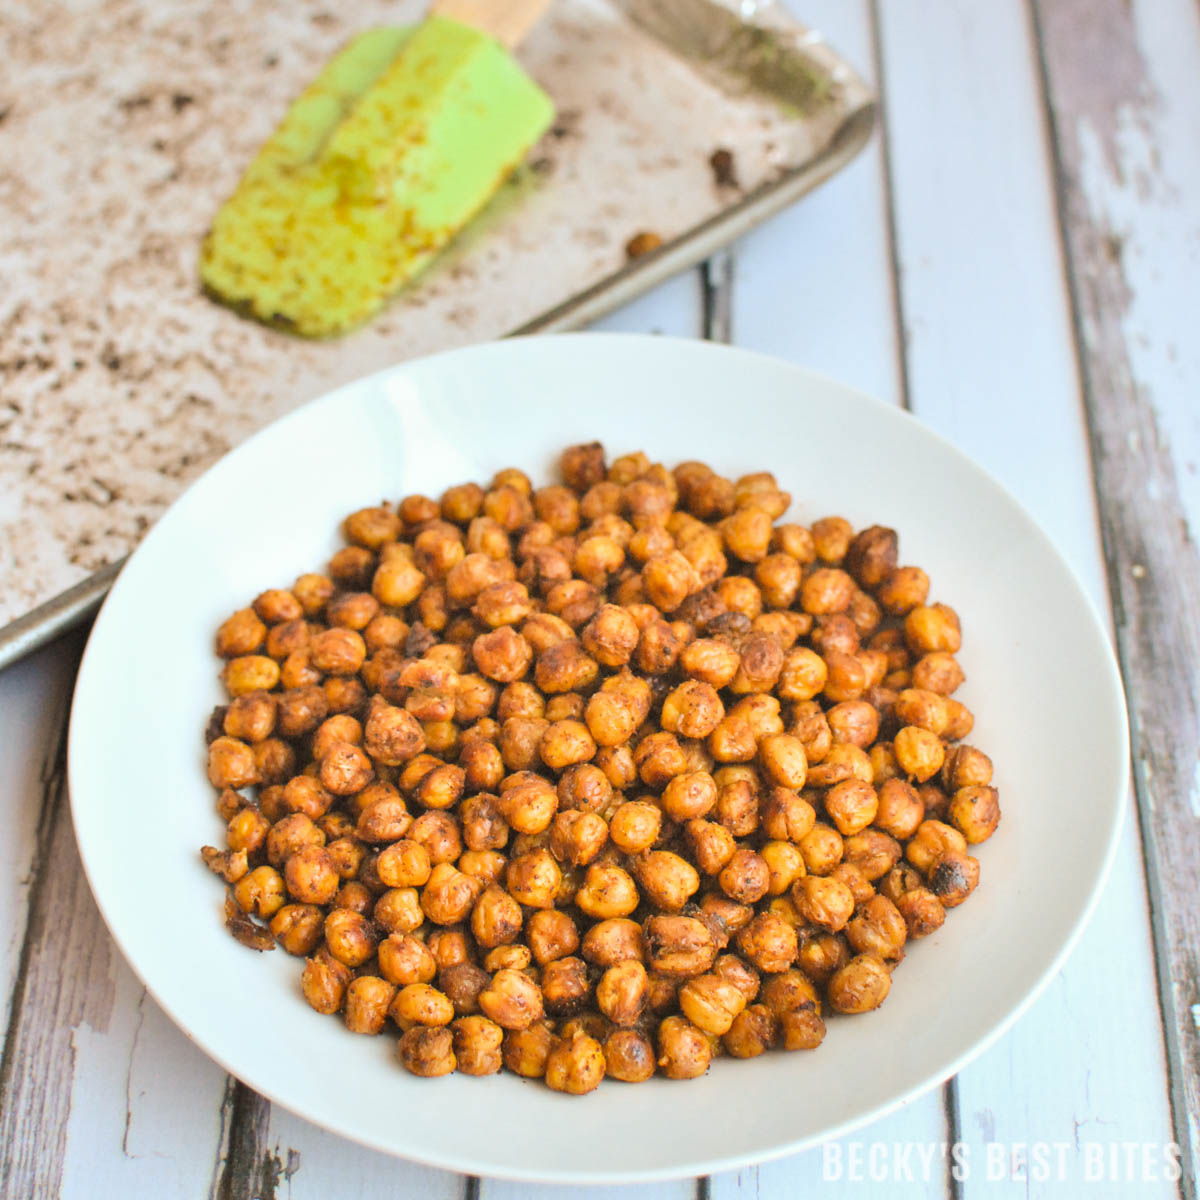 Smoky Spice Blend Roasted Chickpeas is a healthy recipe that is an ideal high fiber snack or appetizer. Throw a handful in salads for added crunch & texture. beckysbestbites.com